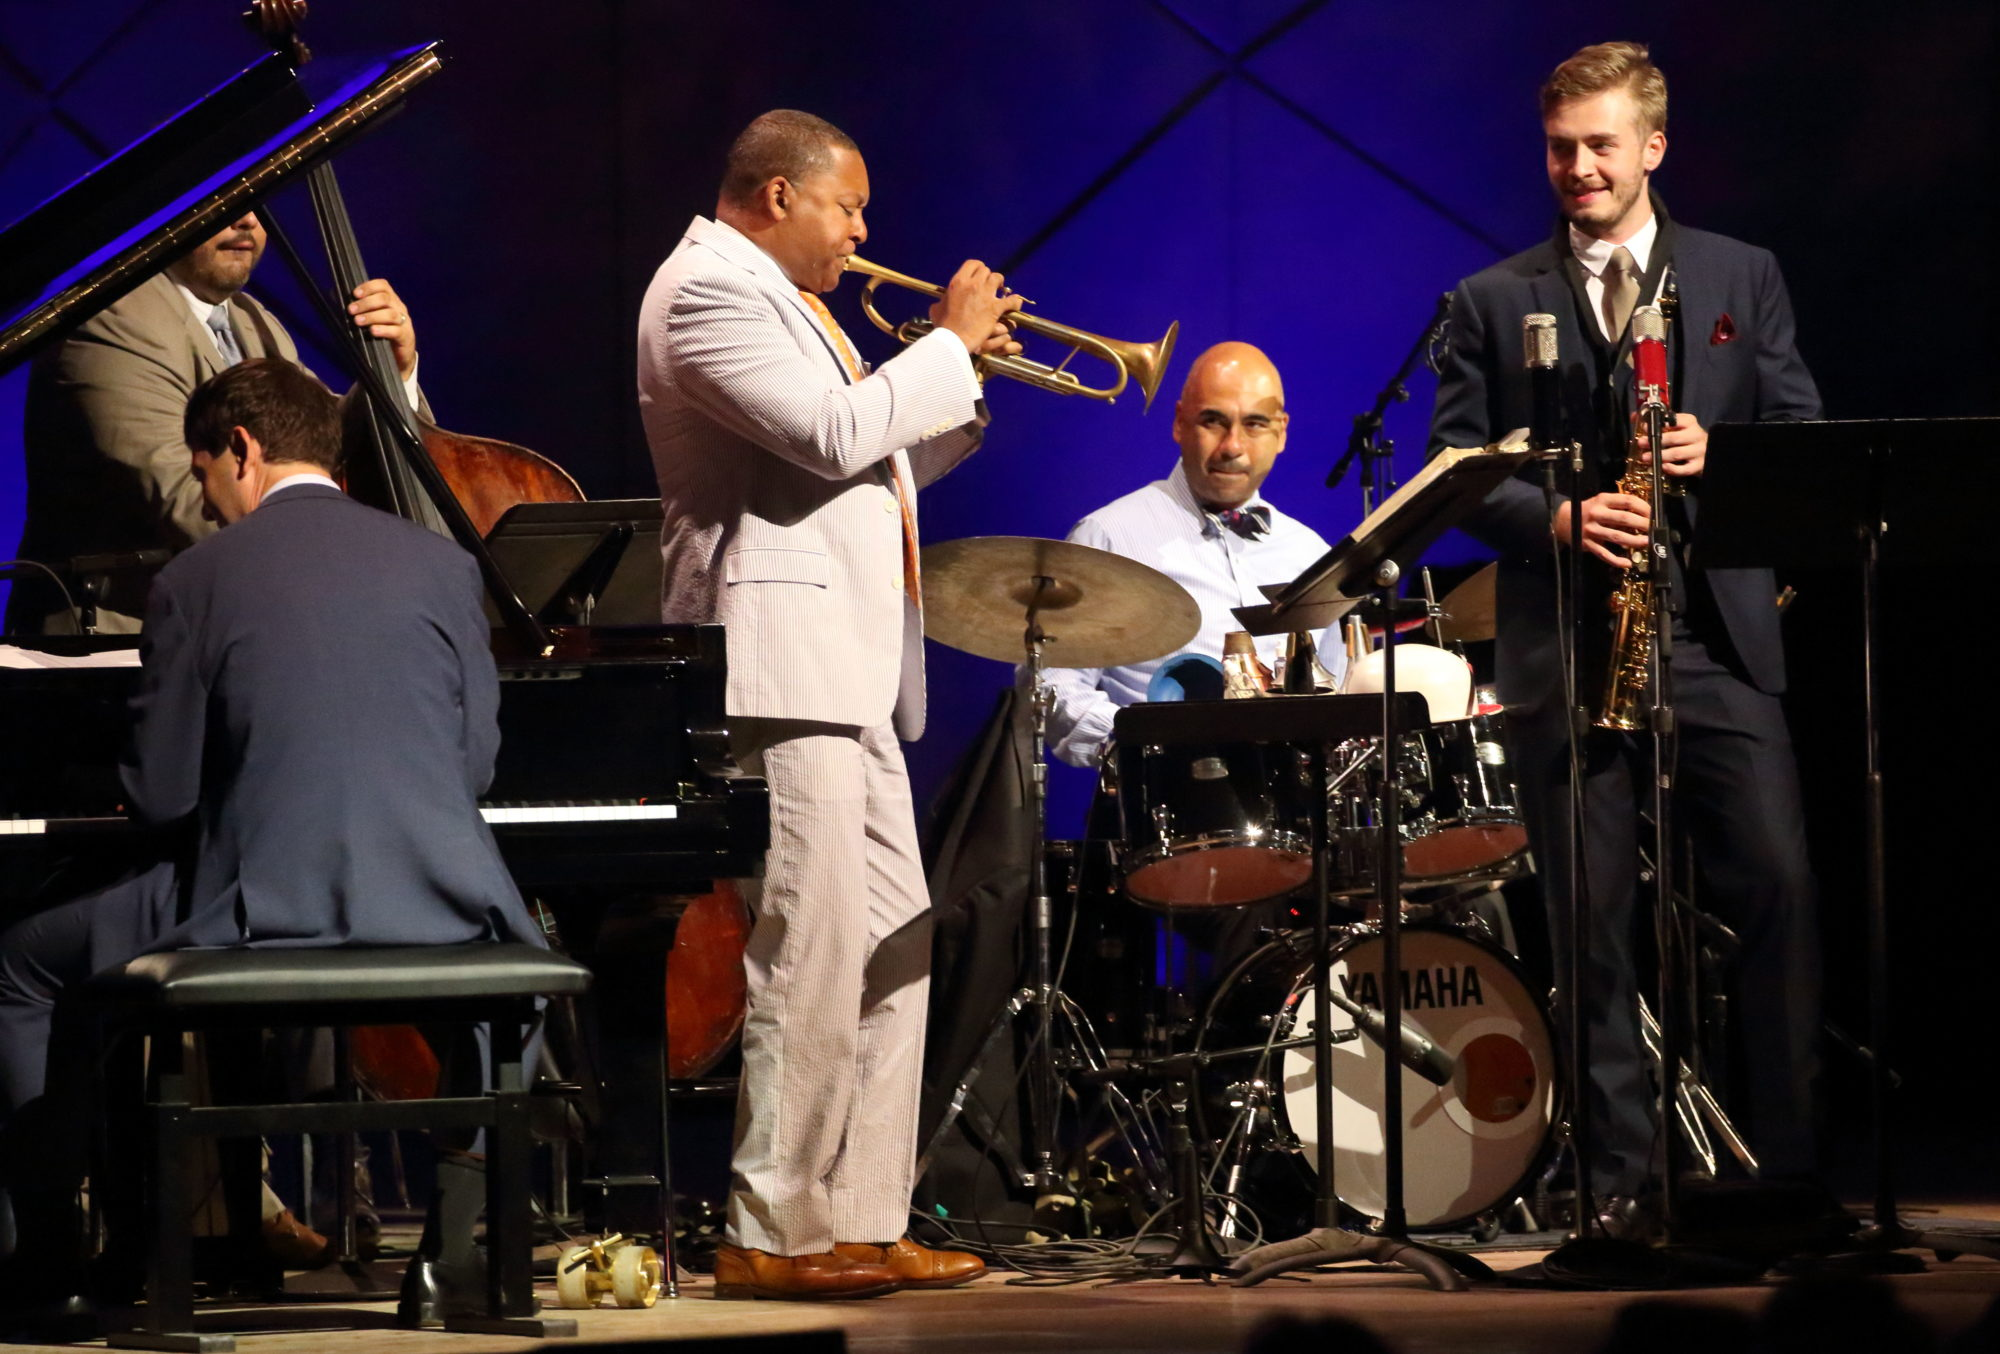 Wynton Marsalis Quintet and Ellis Marsalis Quintet at Tanglewood Sept. 1, 2018; Hilary Scott photo.